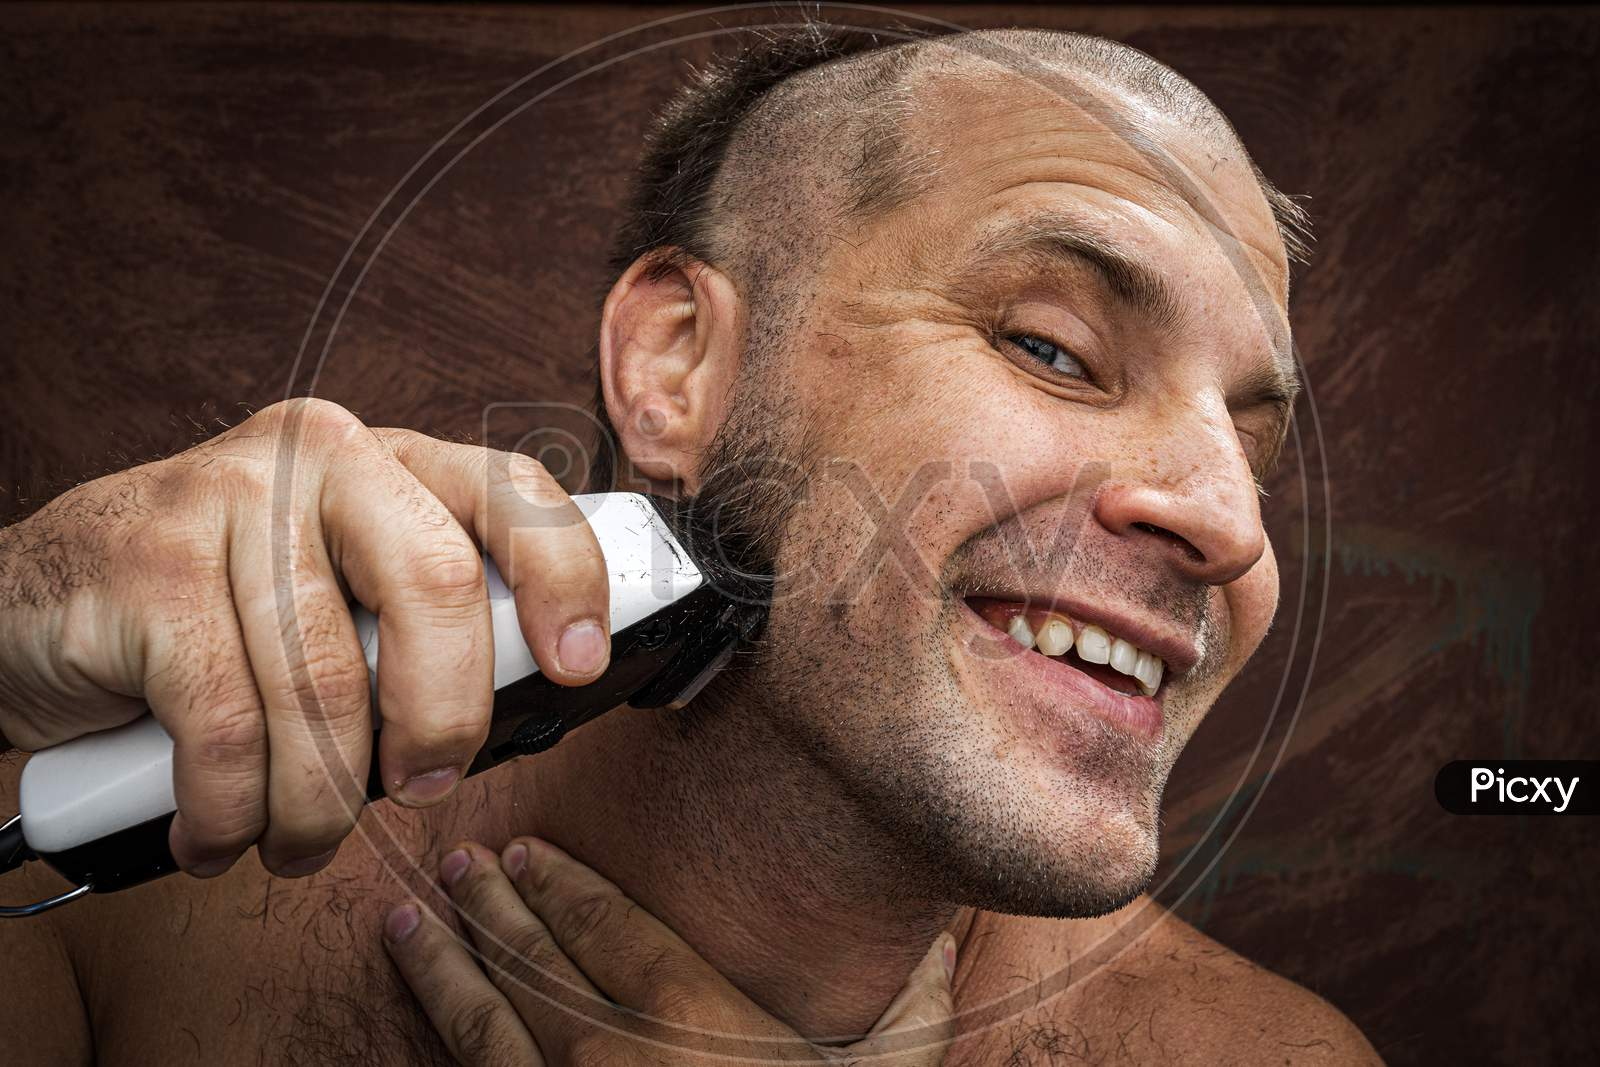 Close-Up Portrait Of Handsome Shirtless Man Shaving His Beard With An Electric Razor And Gritting His Teeth, Against Brutal Background. Concept Of Male Home Care Without Beauty Salons